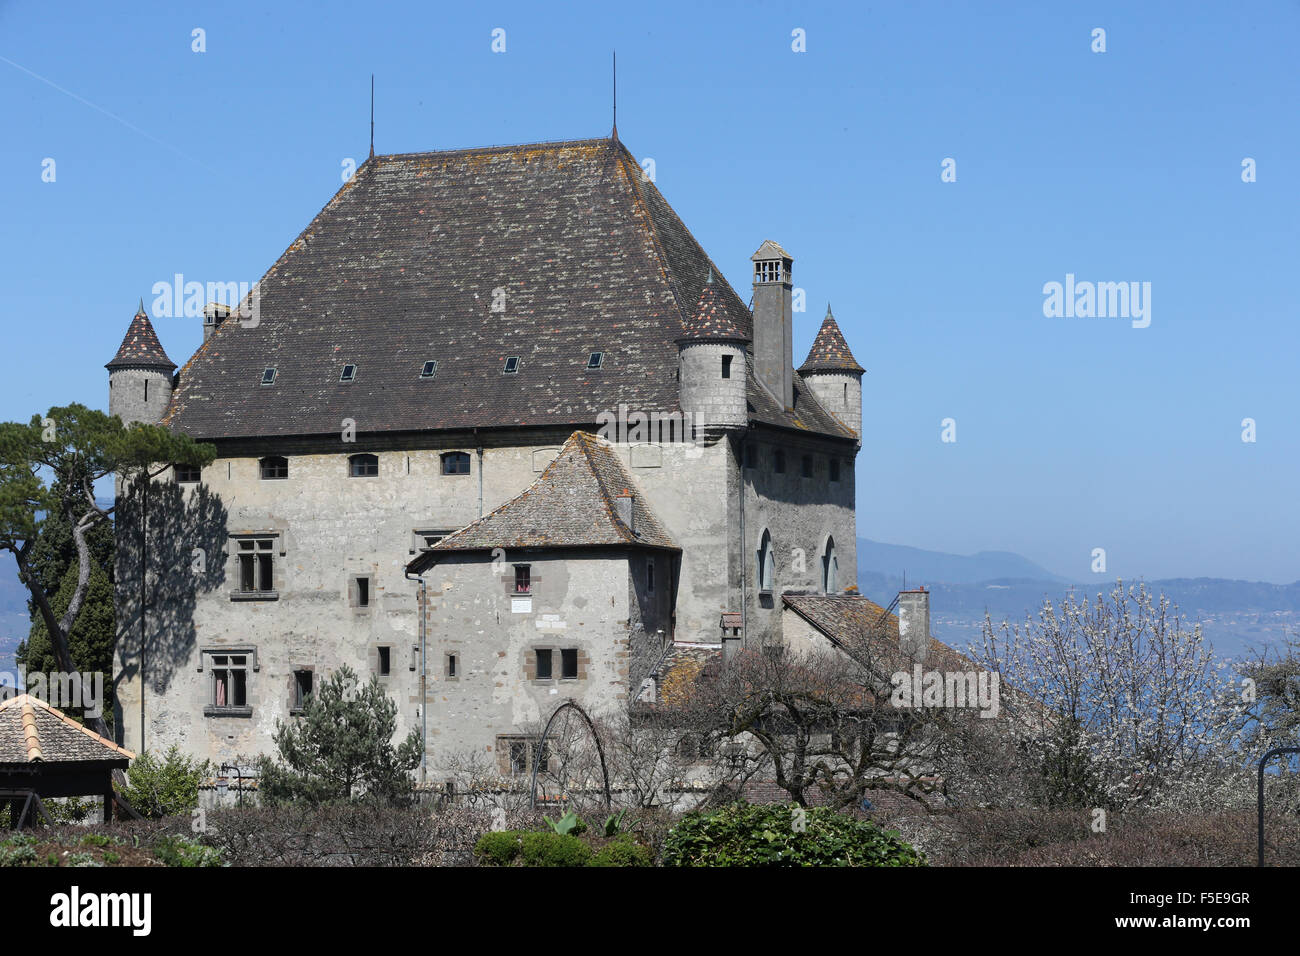 Yvoire, Lake Geneva, the Castle dating from the 14th century, Yvoire, Haute-Savoie, France, Europe - Stock Image